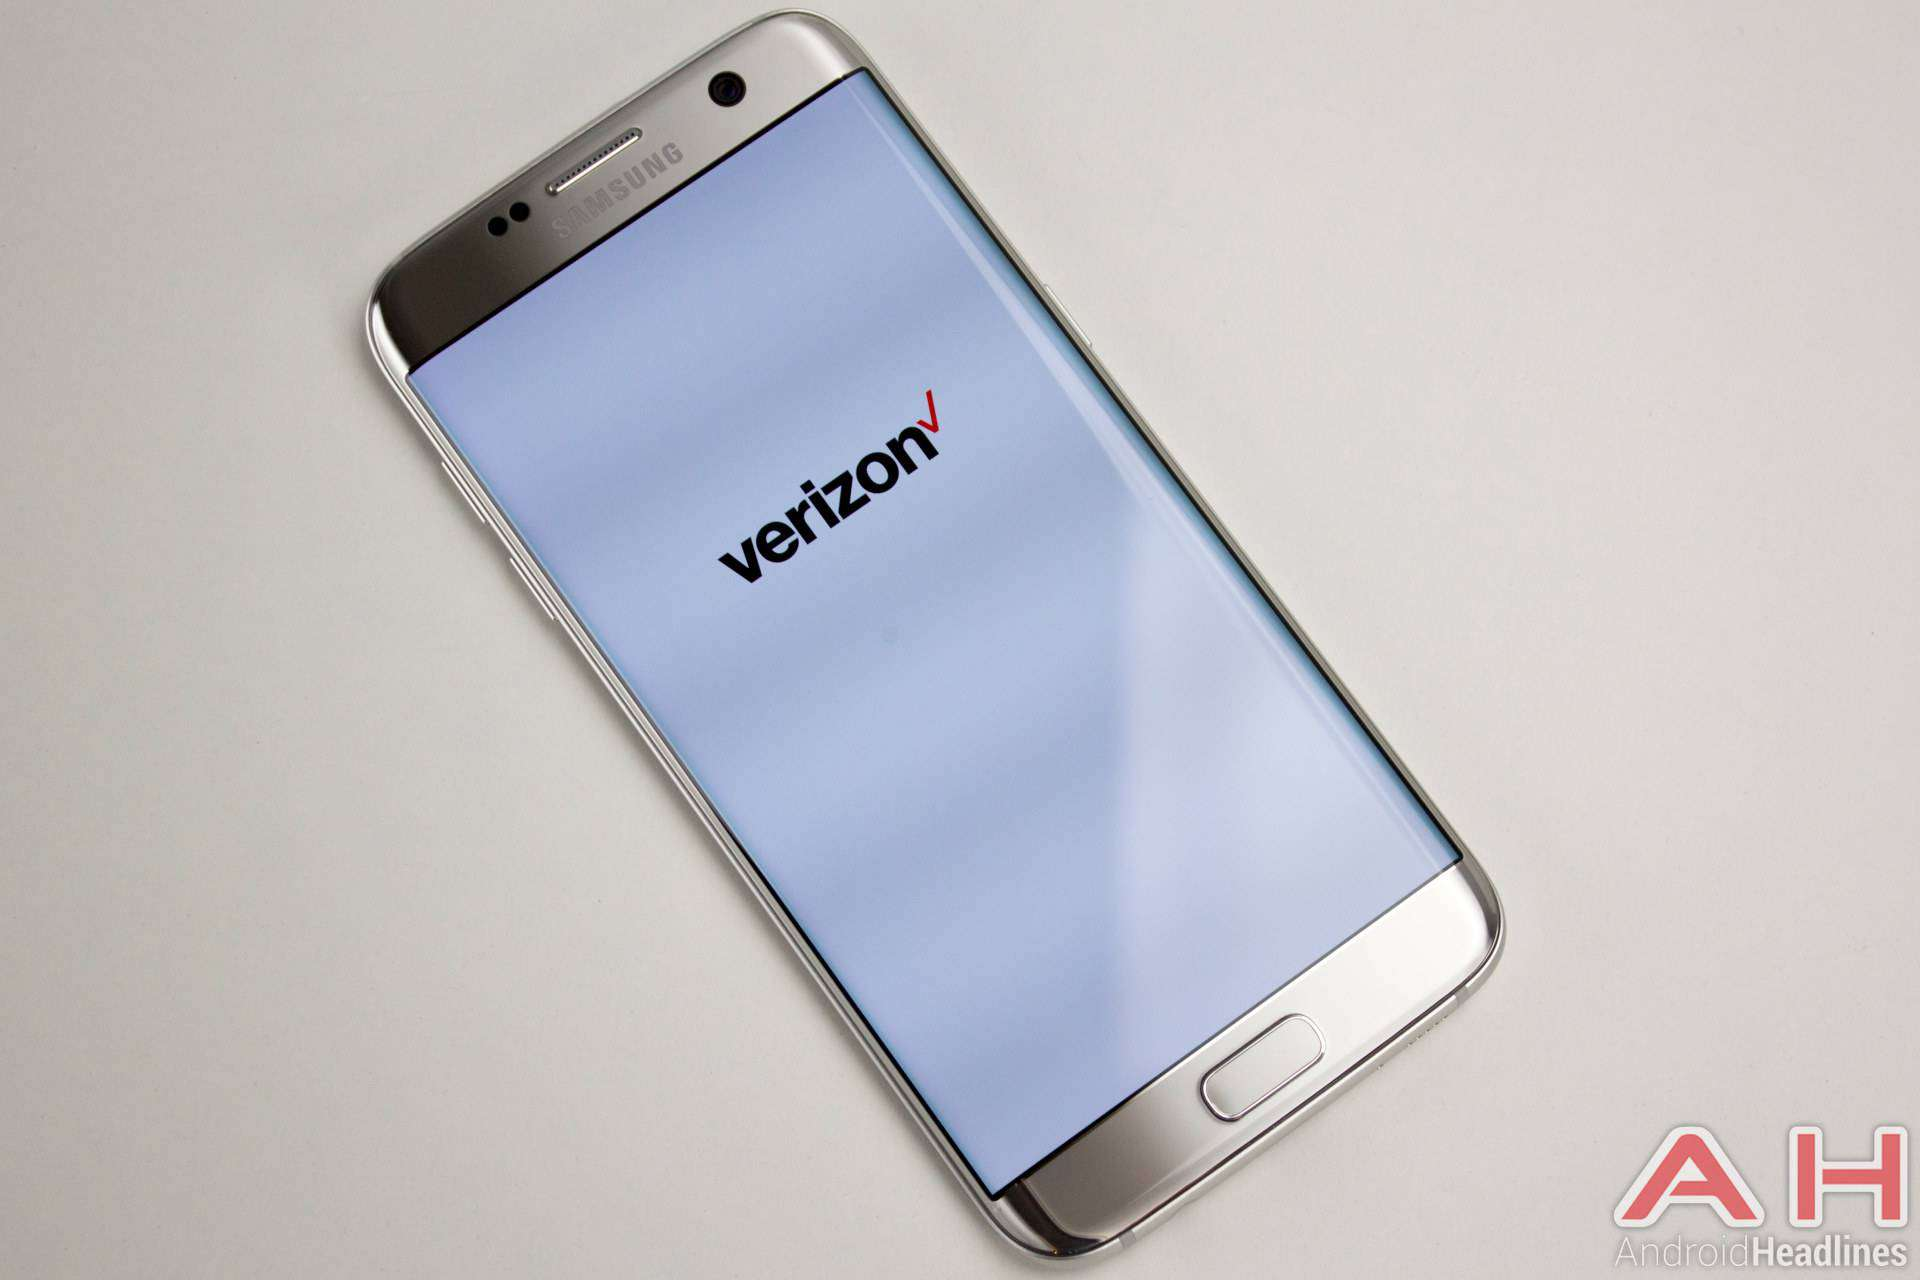 Samsung-Galaxy-S7-Edge-AH-NS-Titanium-verizon-logo